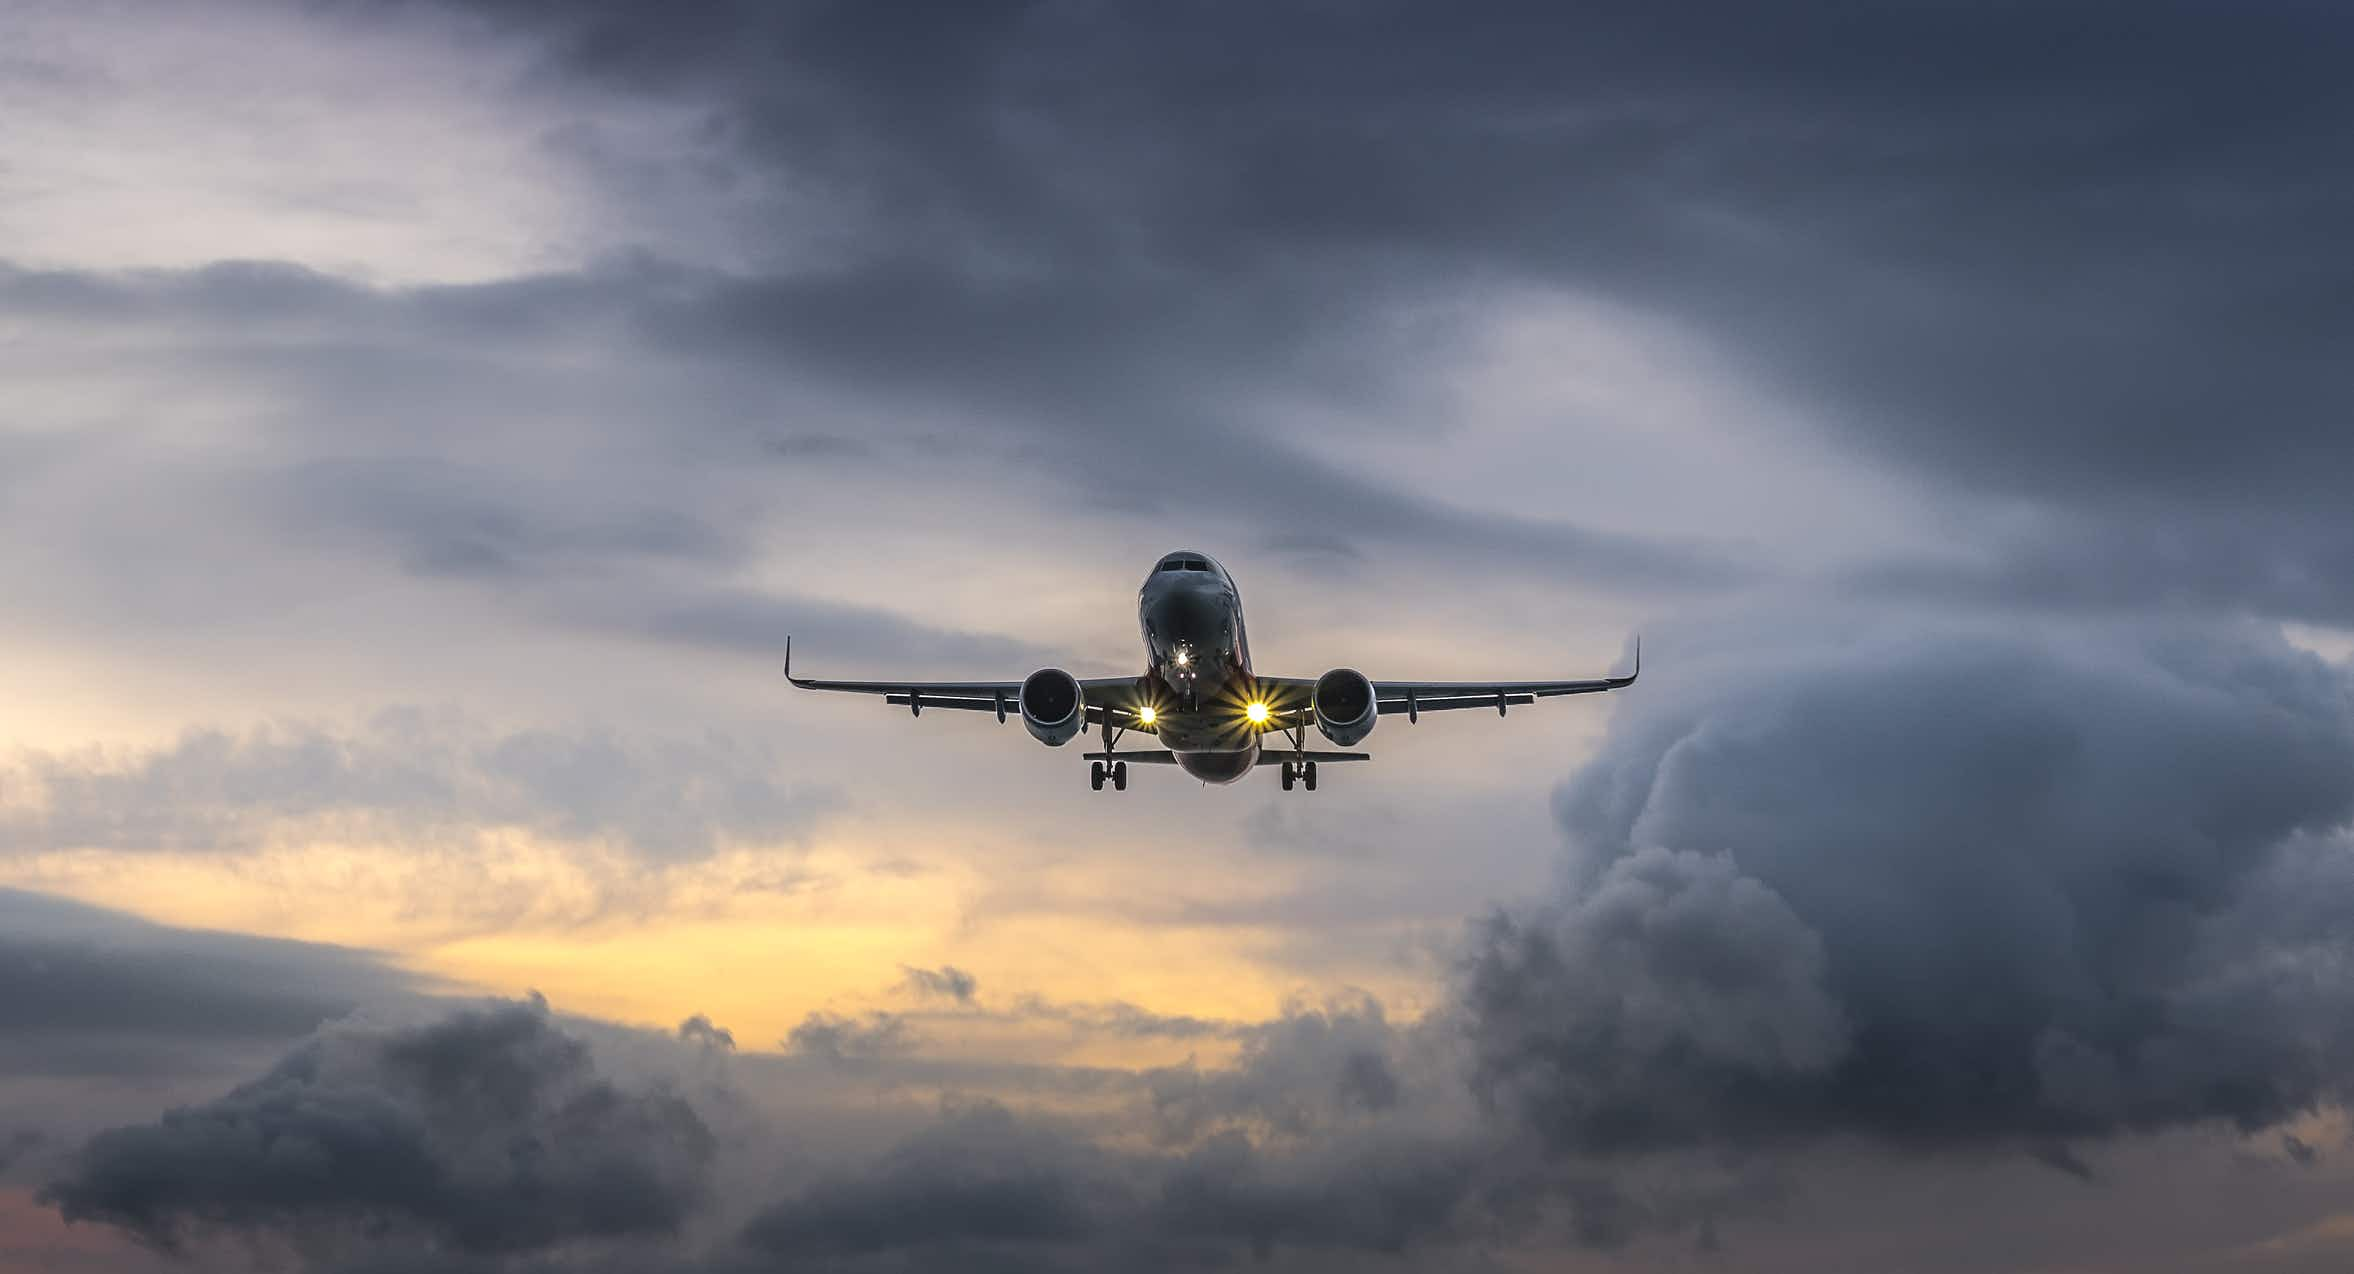 No more bumpy rides if laser technology can solve the problem of air turbulence